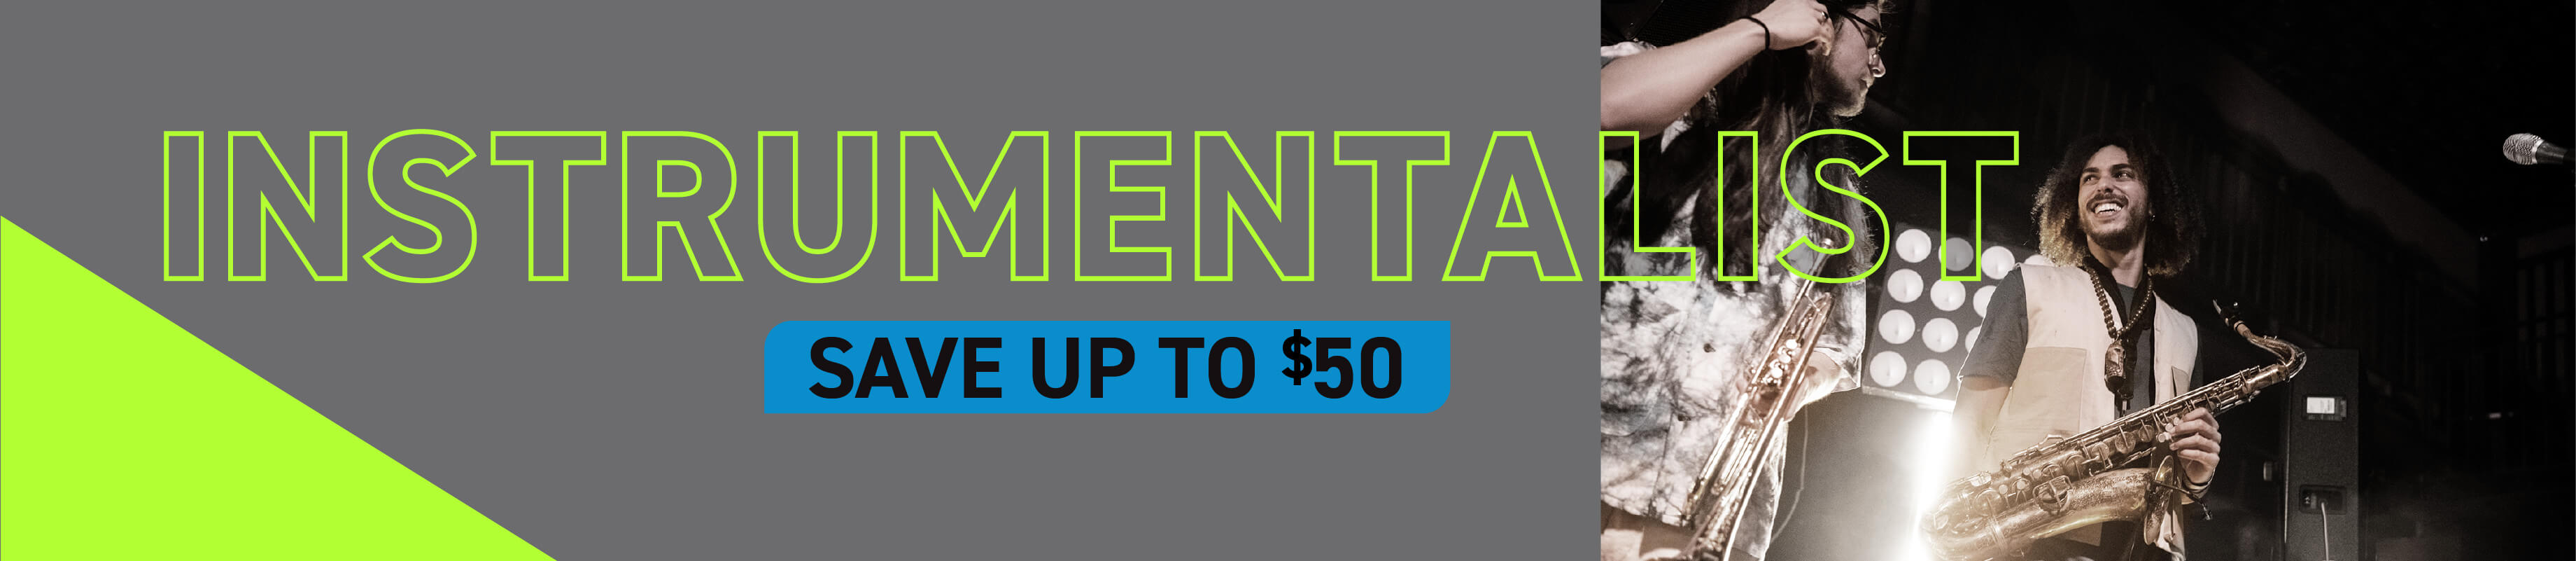 Instrumentalist | Save up to $50